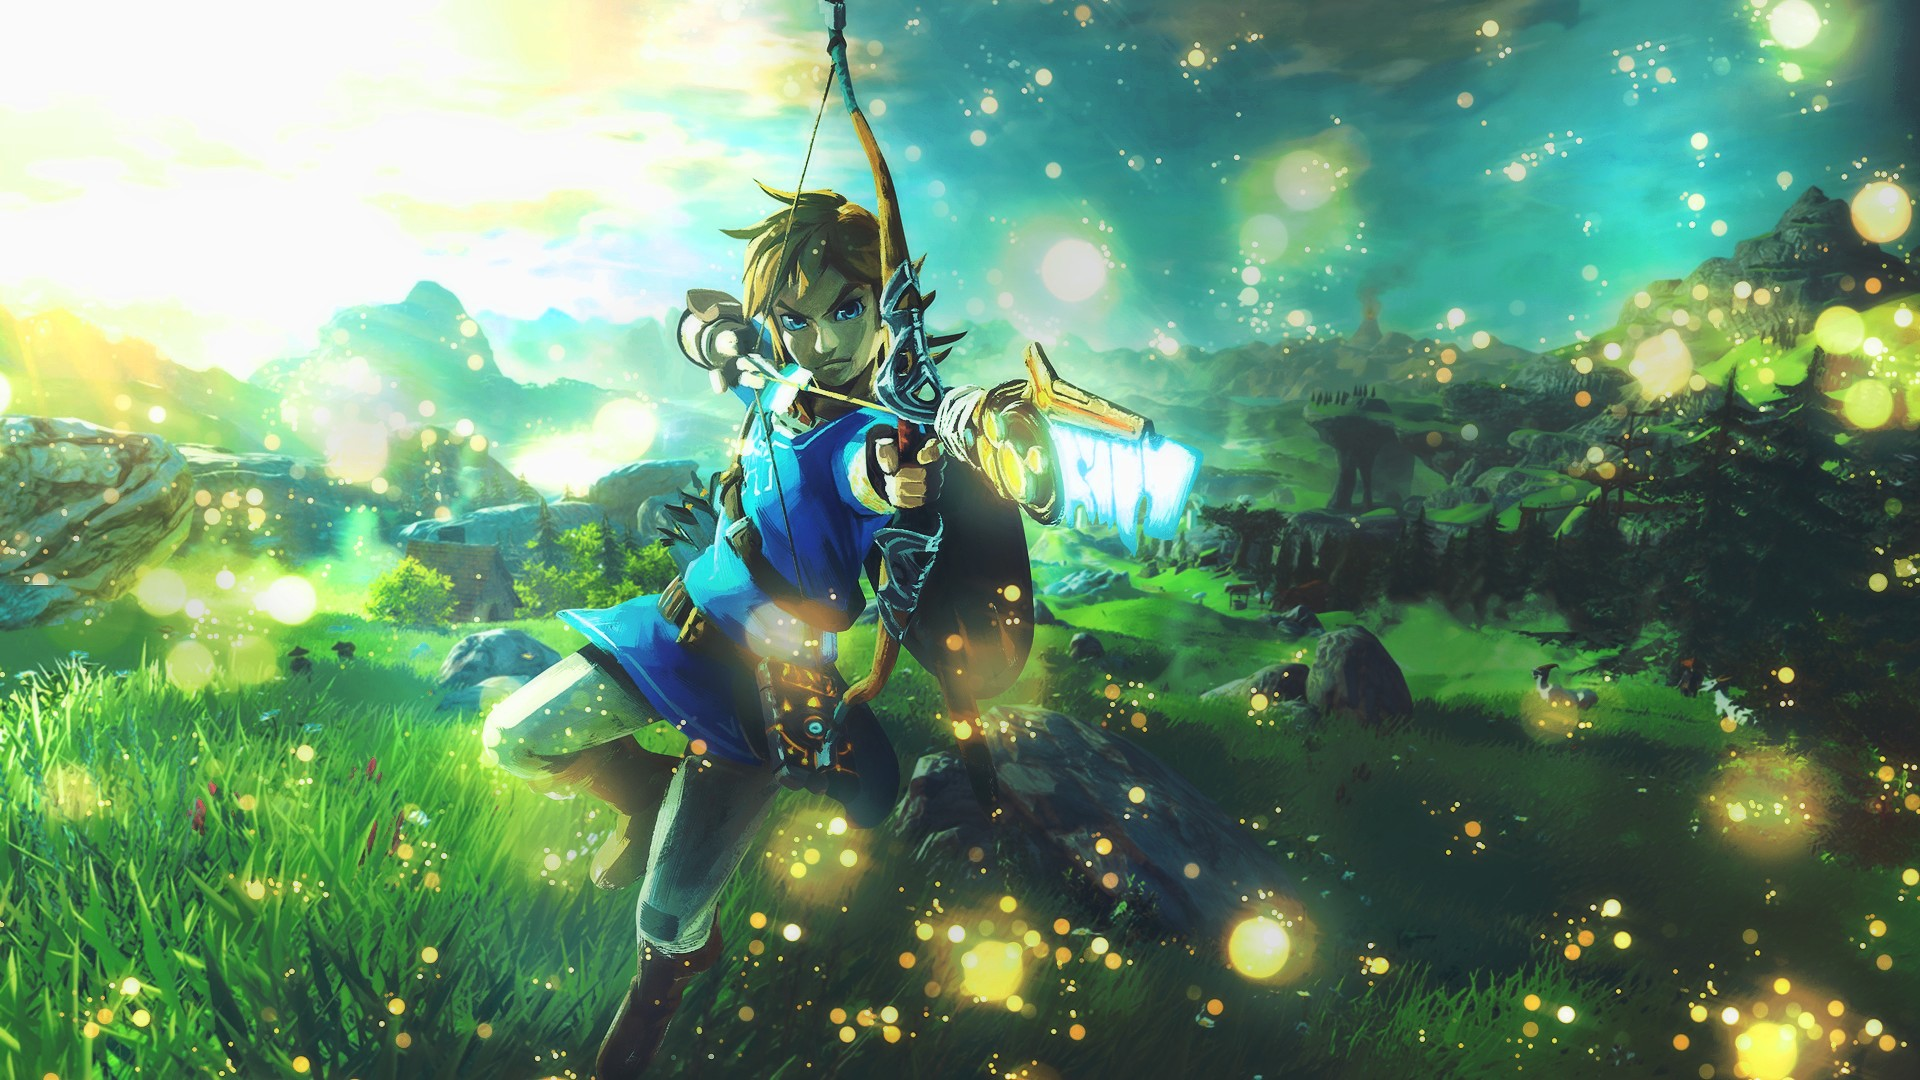 Zelda Breath Of The Wild Wallpaper Download Free Cool High